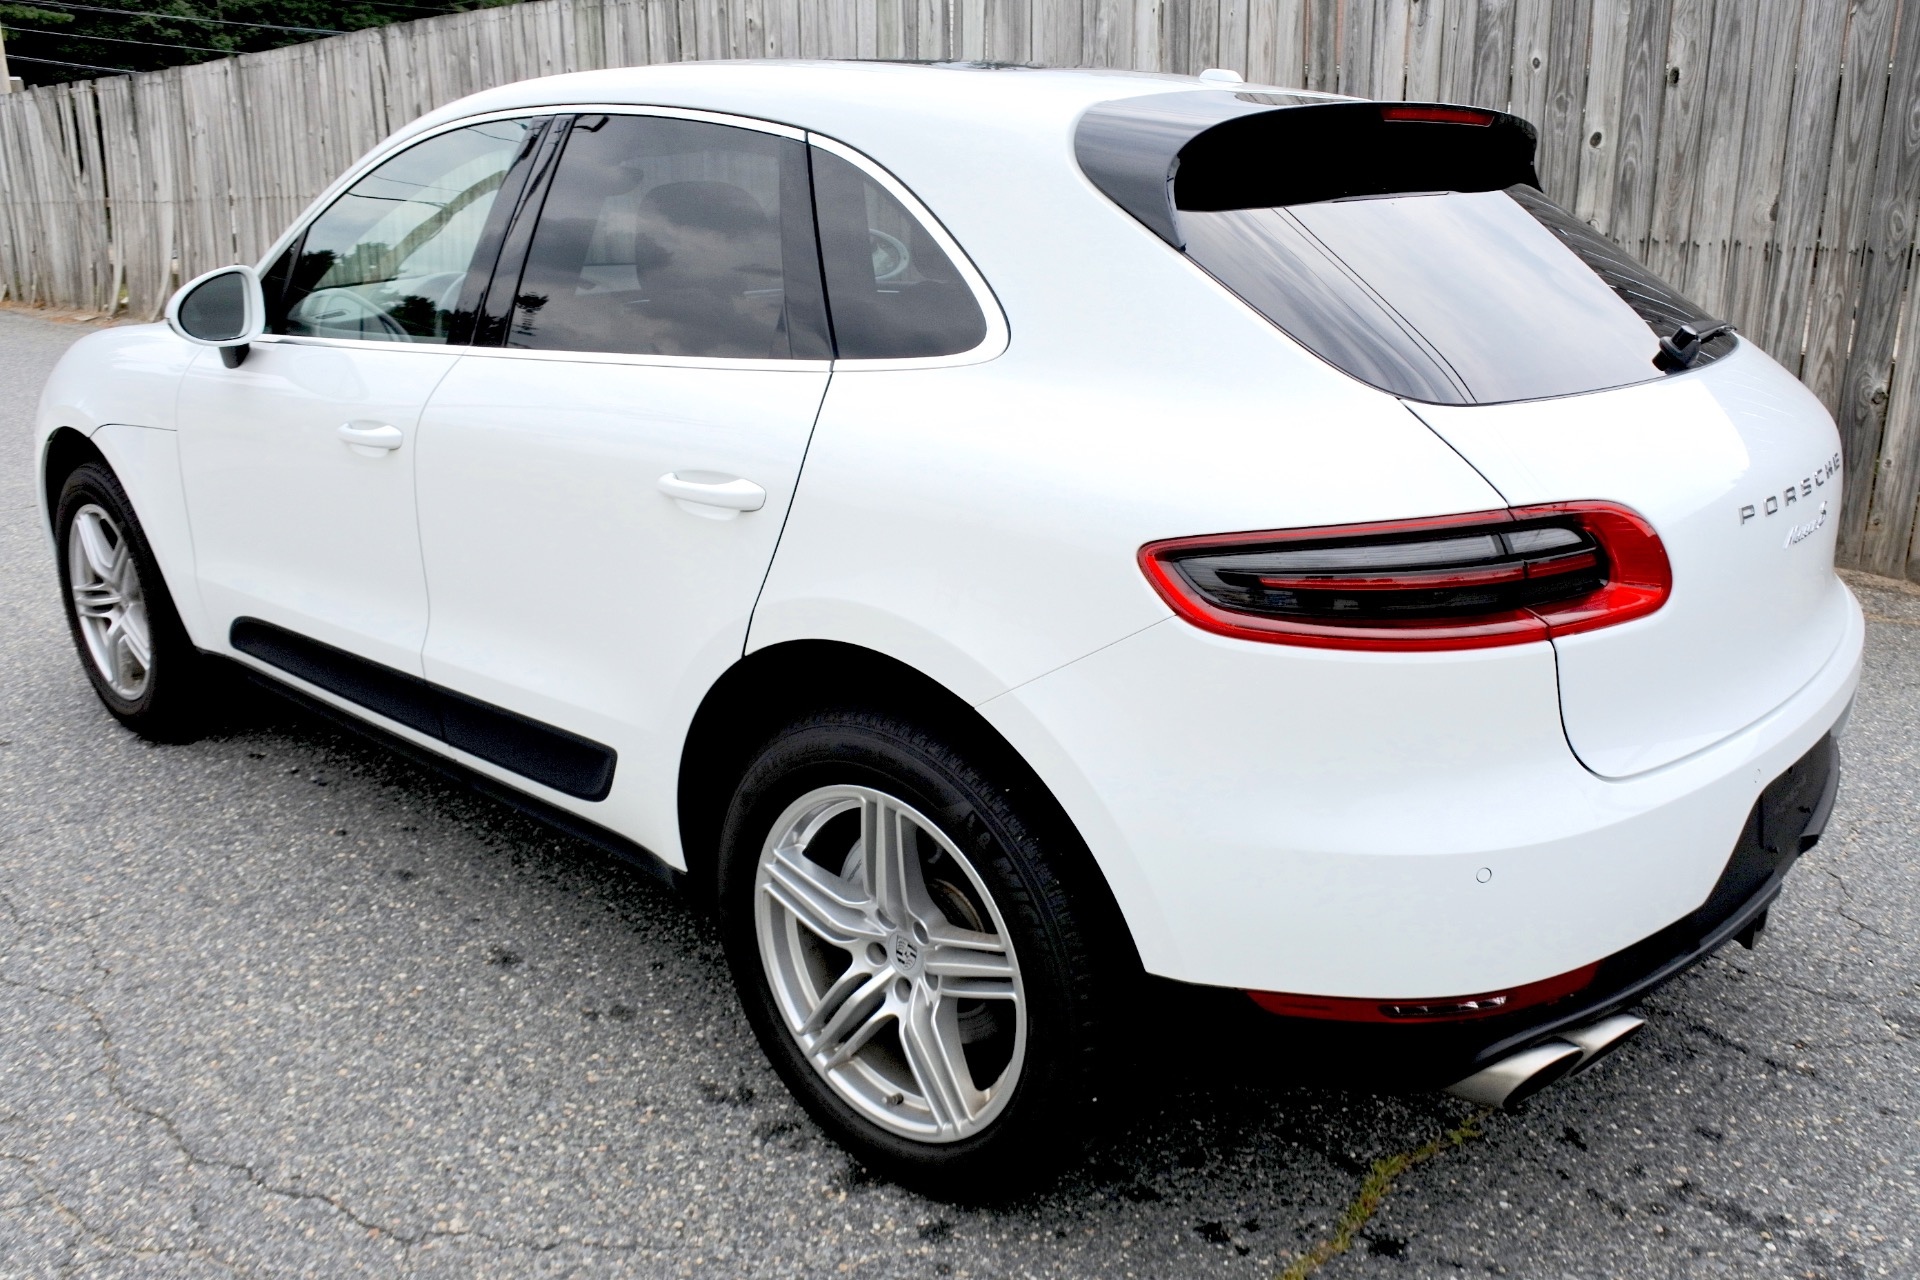 Used 2015 Porsche Macan AWD 4dr S Used 2015 Porsche Macan AWD 4dr S for sale  at Metro West Motorcars LLC in Shrewsbury MA 3